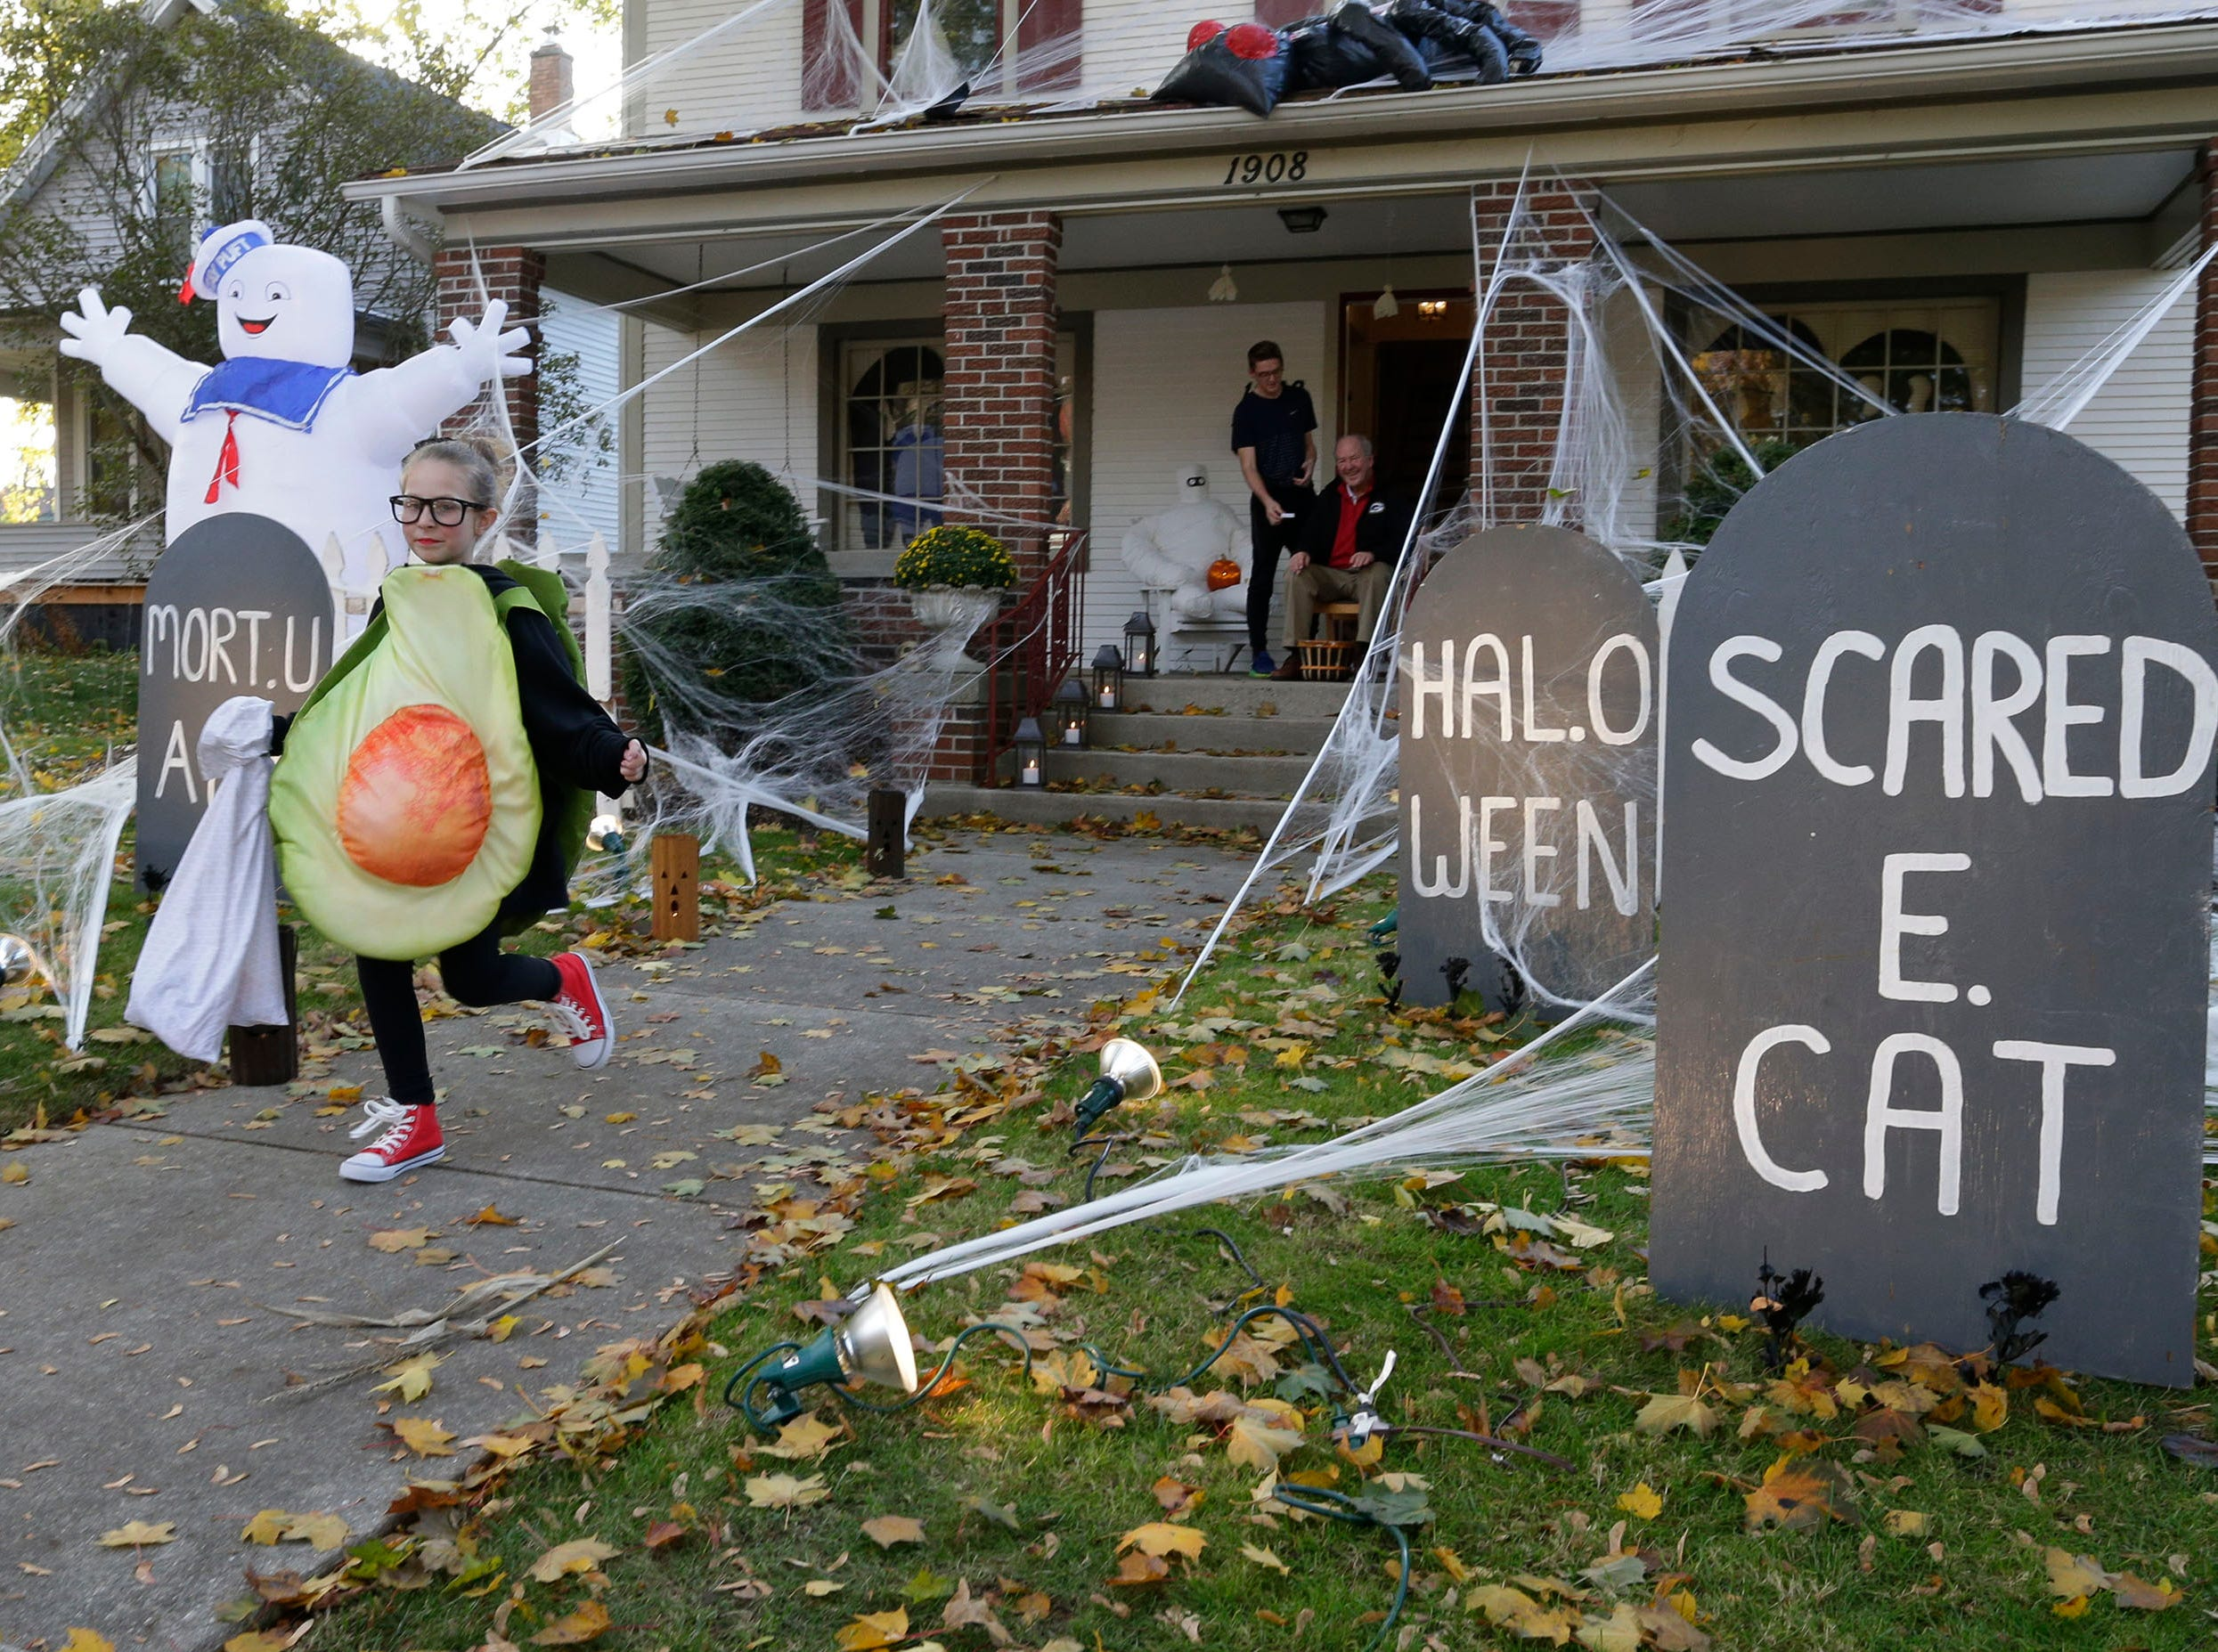 A trick or treater scampers from a house on North Sixth Street during Trick or Treat, Wednesday, October 31, 2018, in Sheboygan, Wis.